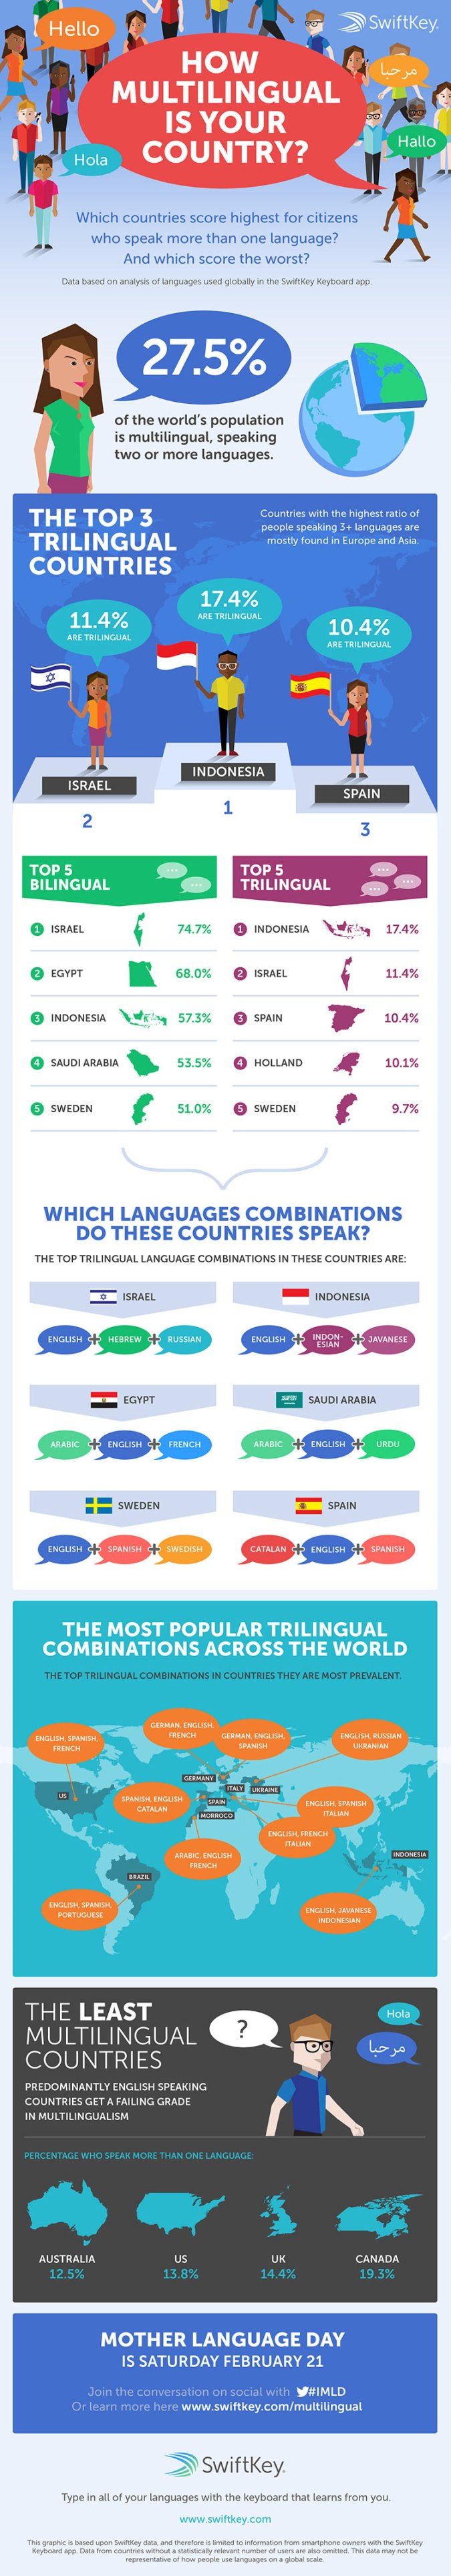 World's Most Multilingual Countries